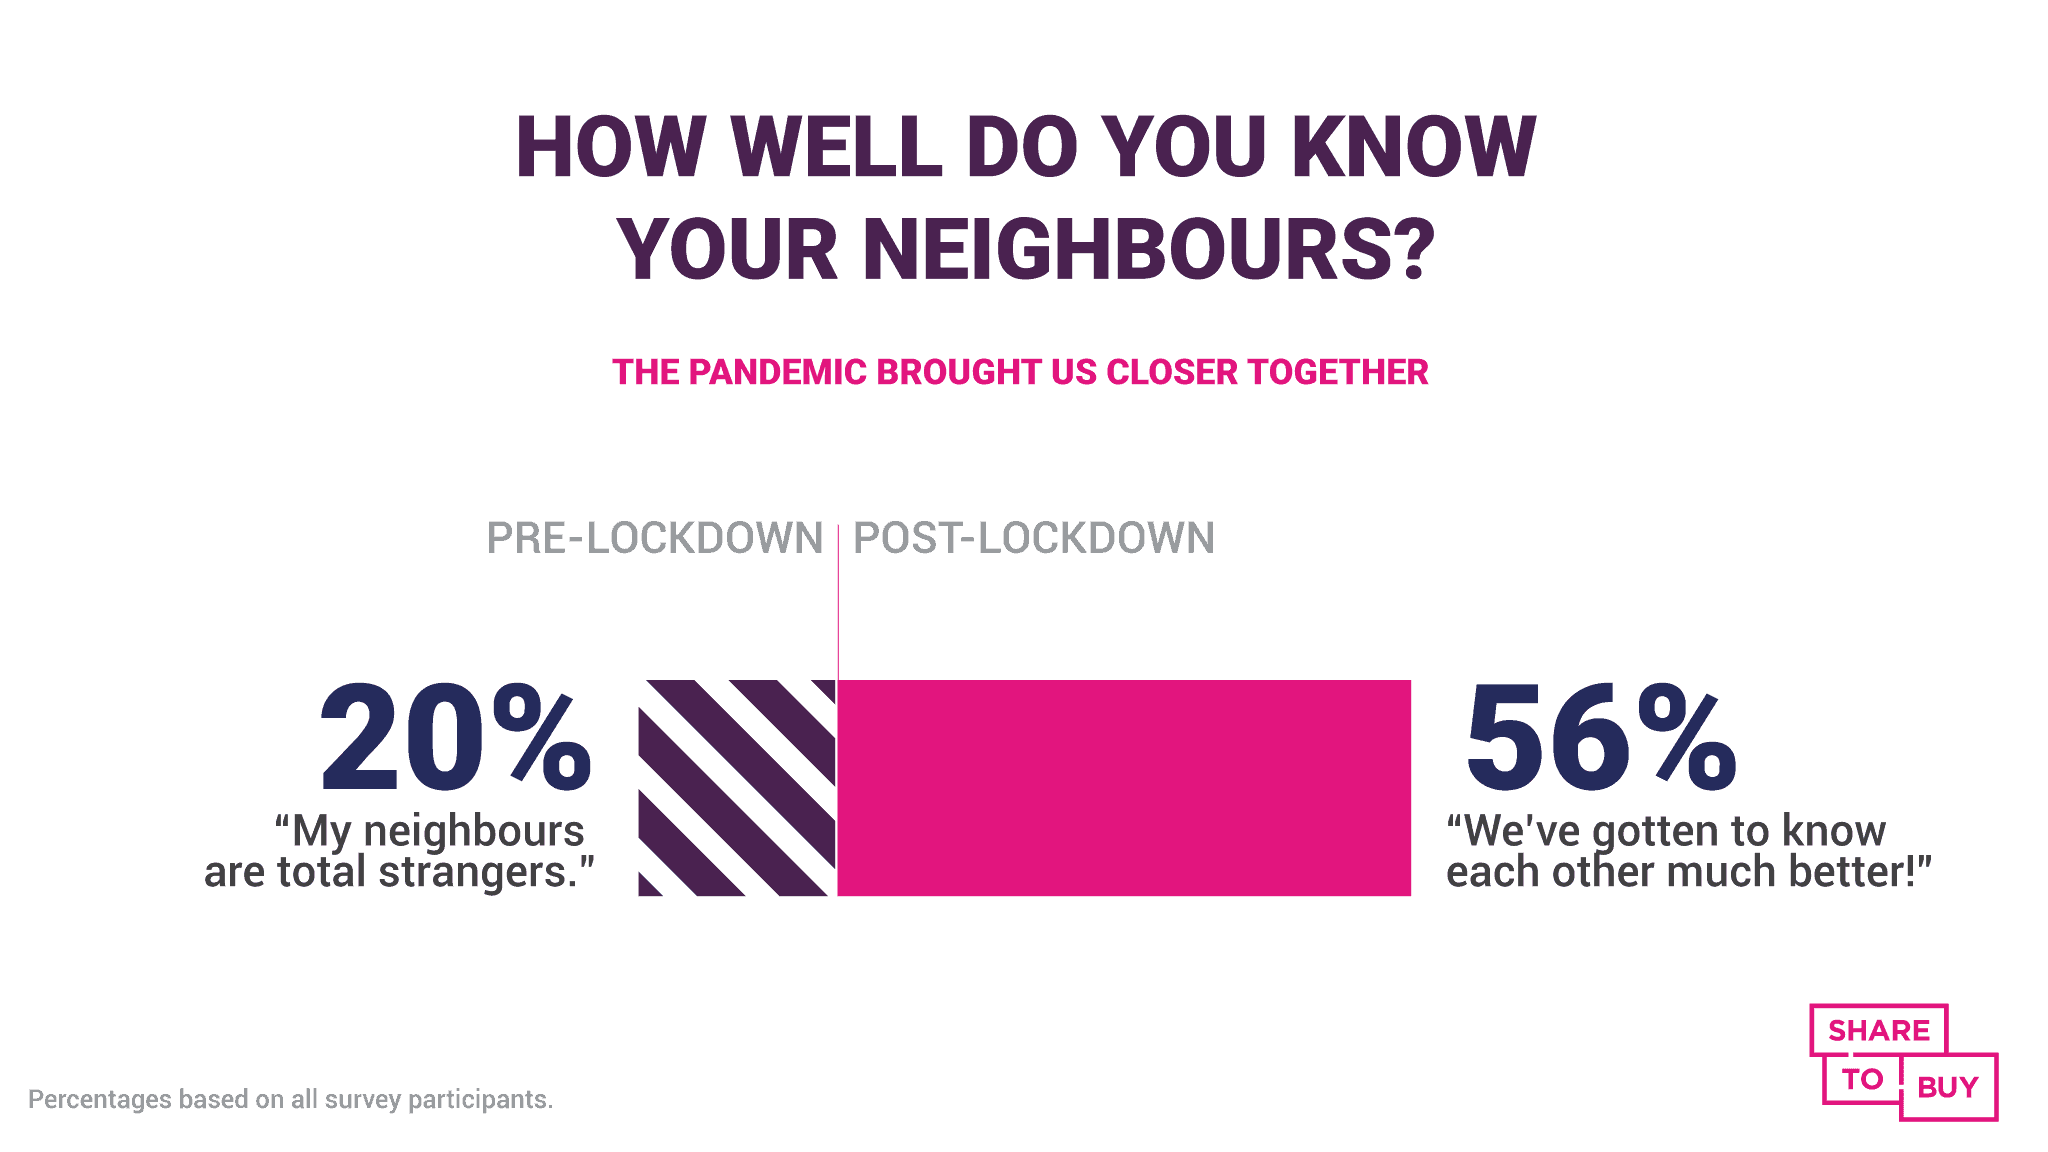 A graphic showing that 56% of Brits feel closer to their neighbours since lockdown